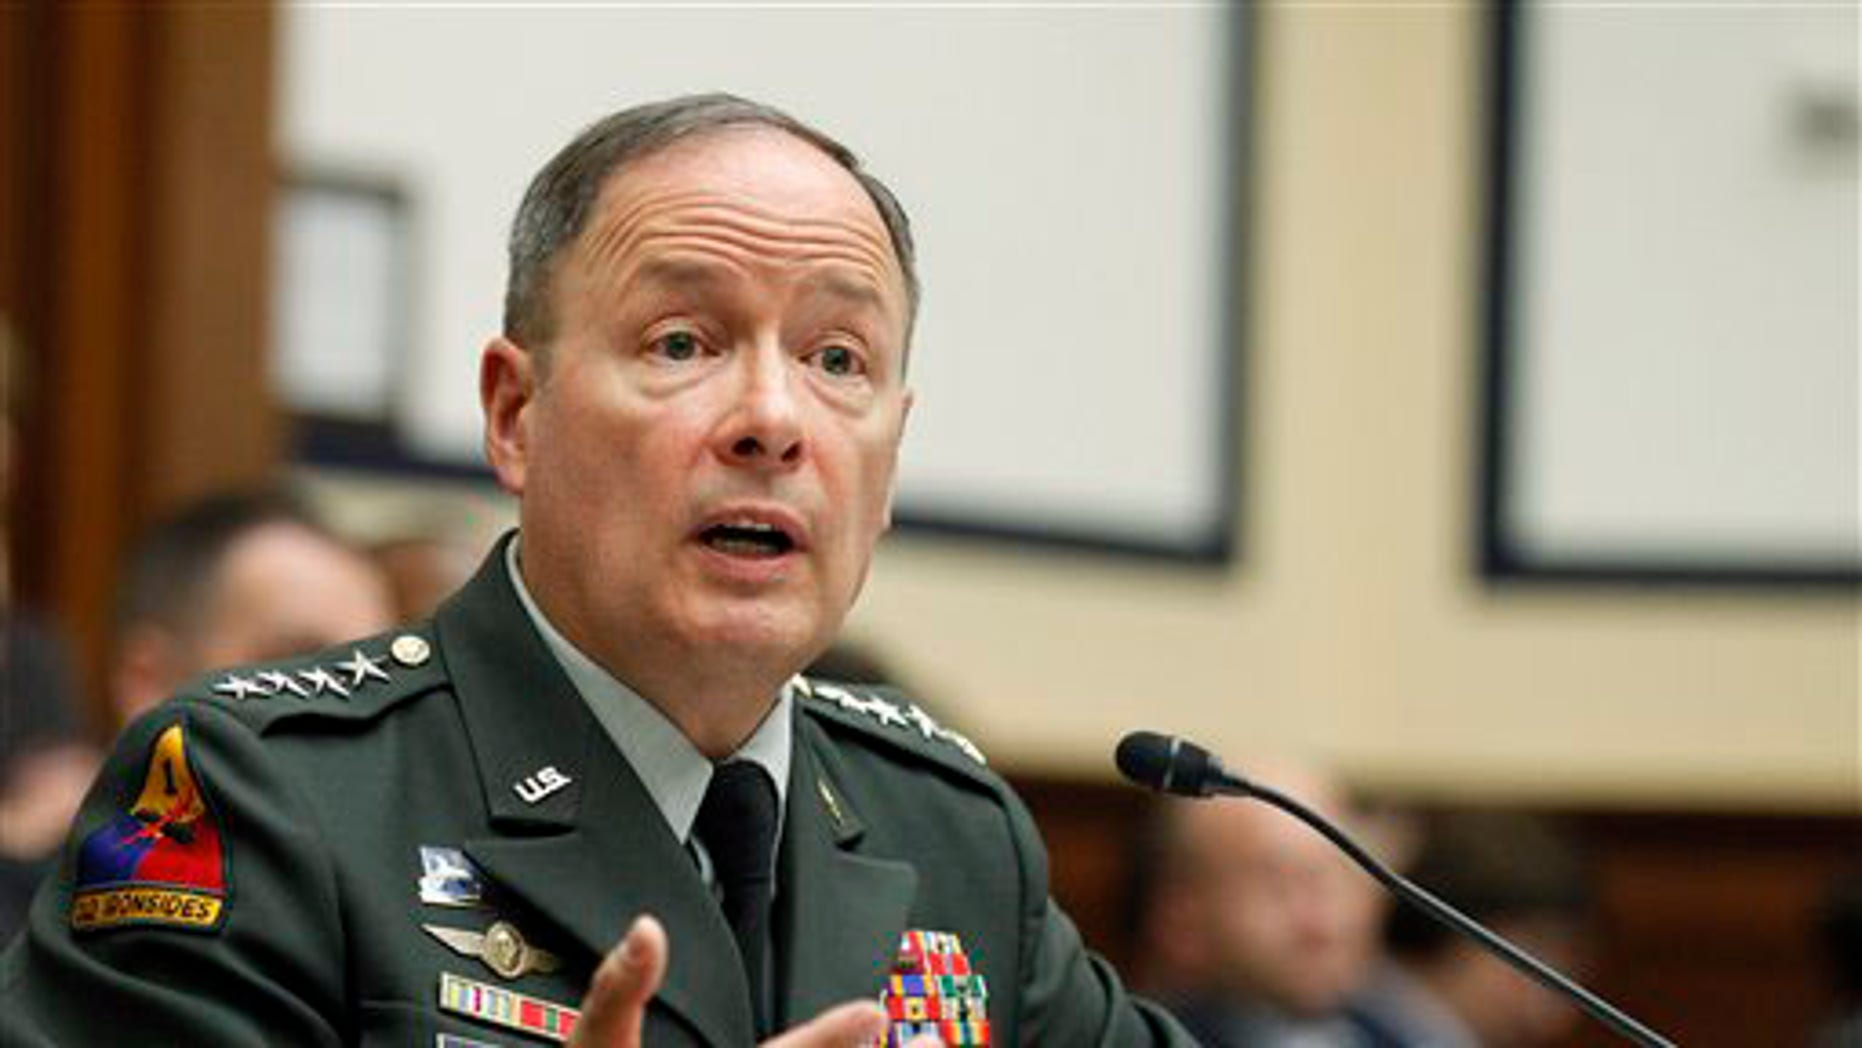 Army Gen. Keith B. Alexander, commander of the U.S. Cyber Command, testifies on Capitol Hill in Washington, Thursday, Sept. 23, 2010, before the House Armed Services Committee hearing on cyberspace operations.